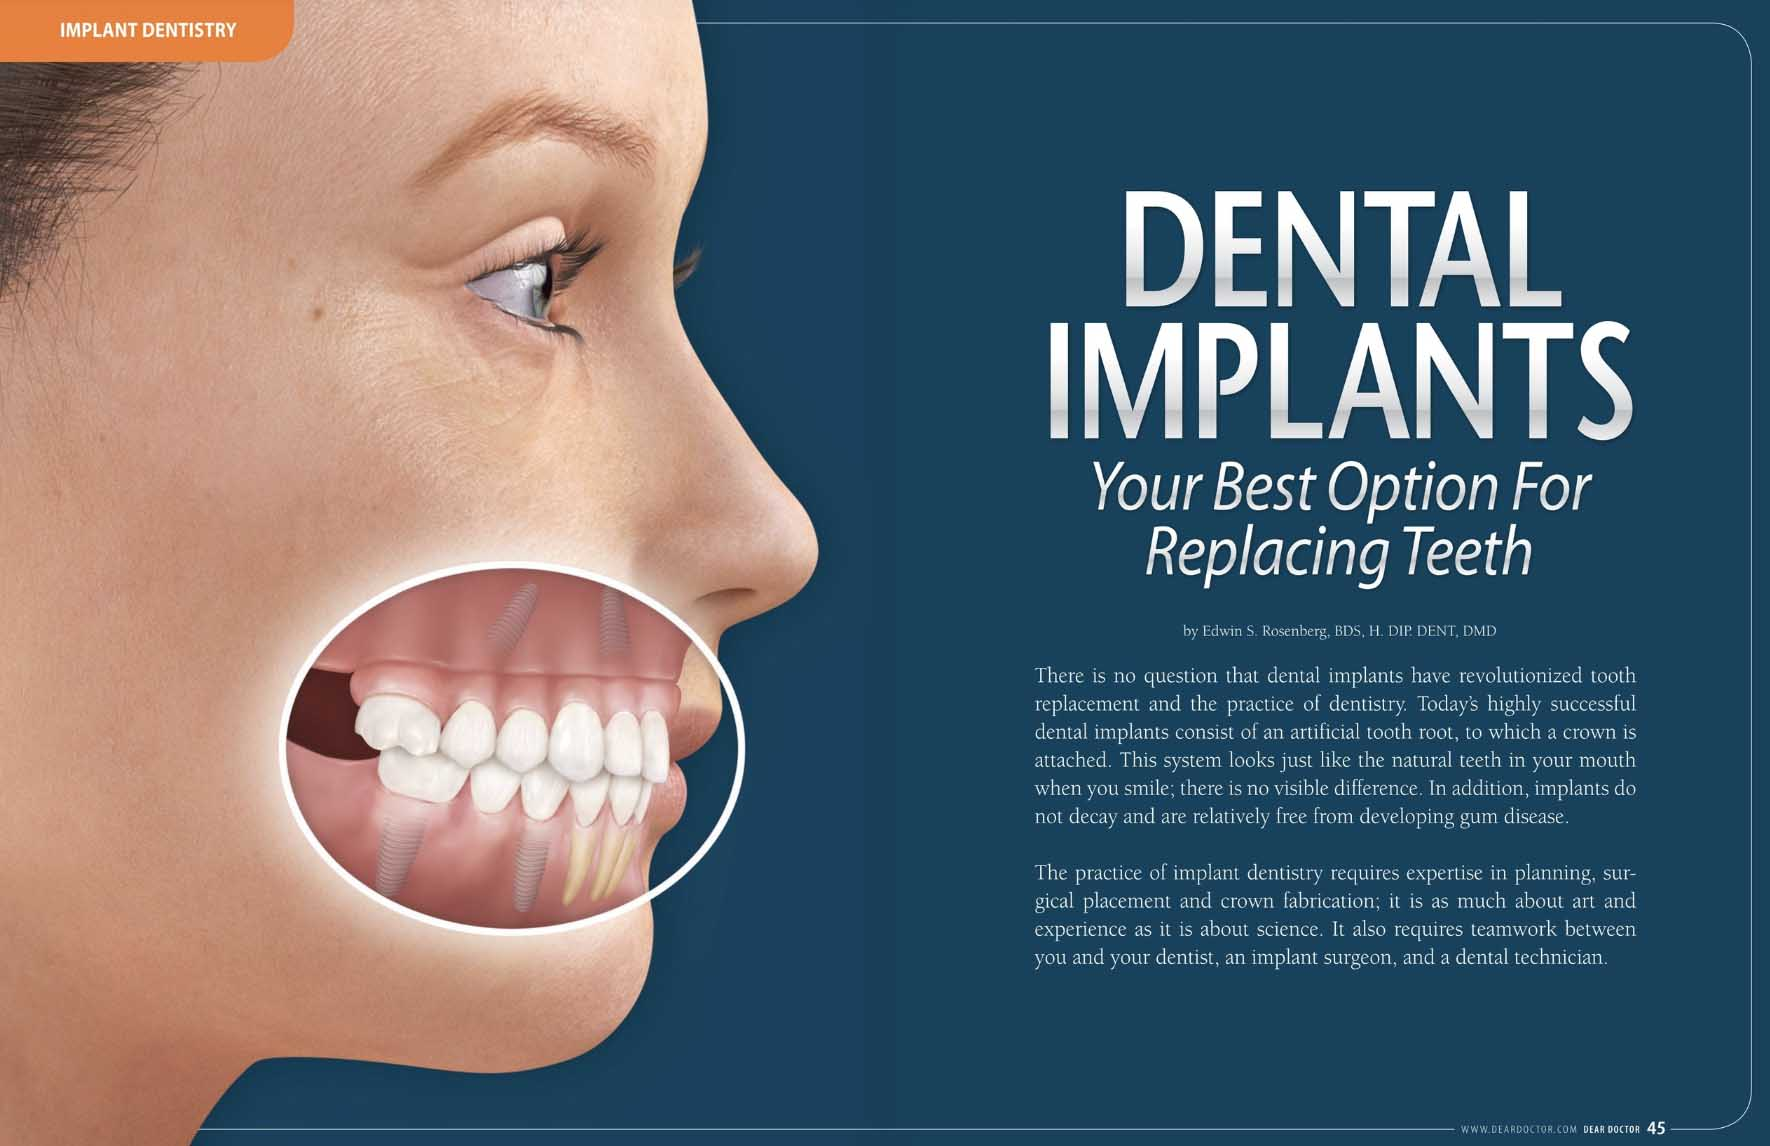 Dental Implants - Your Best Option For Replacing Teeth